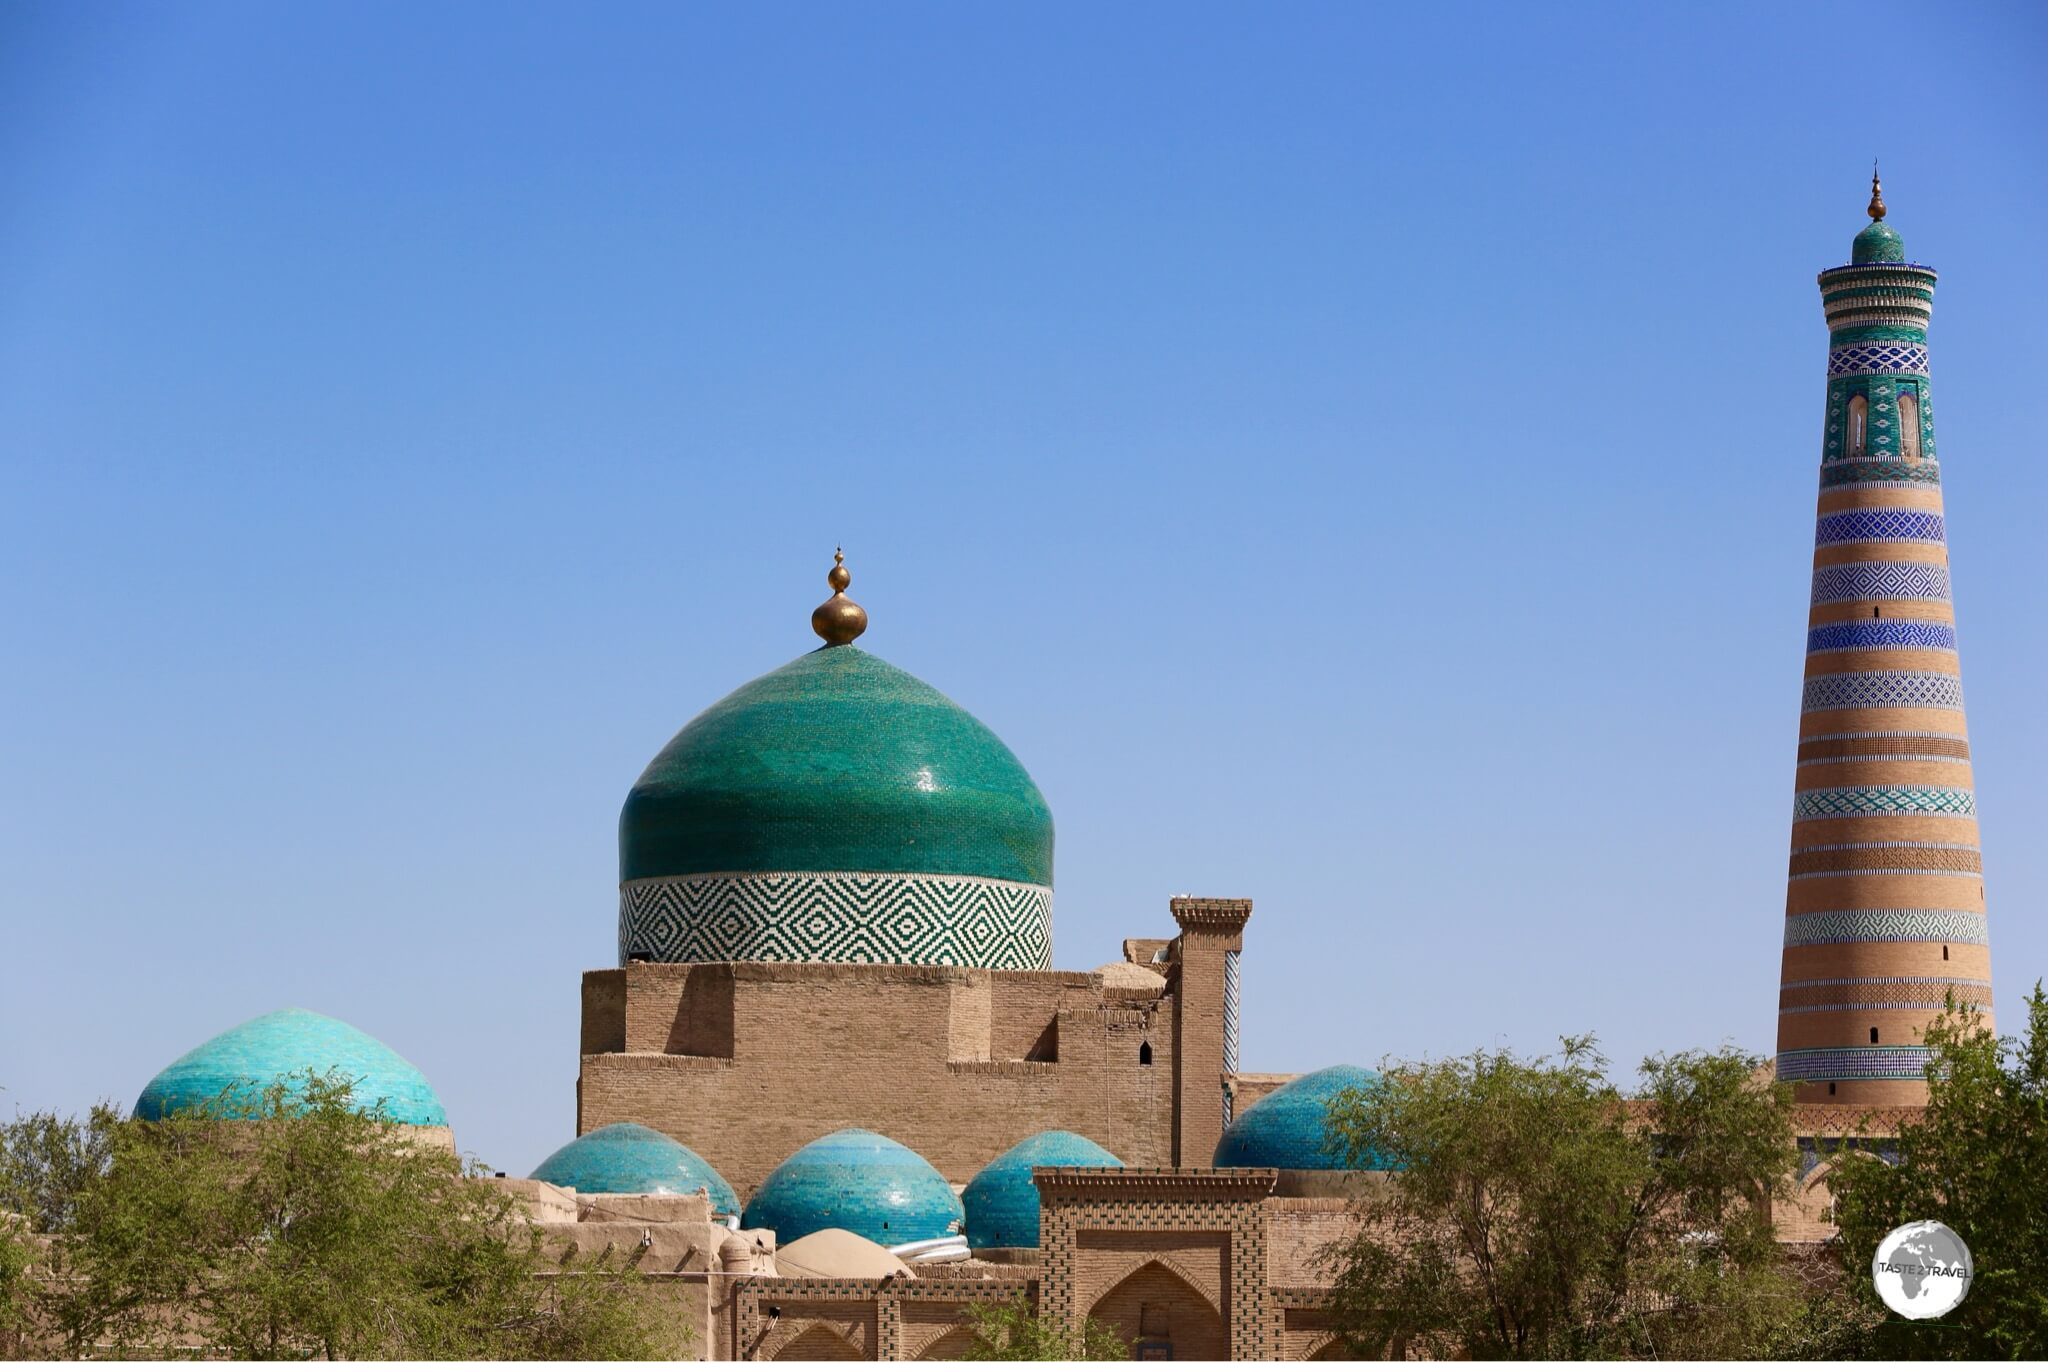 The blue-tiled dome of the Pahlavan Mahmud Mausoleum is the largest in Khiva.